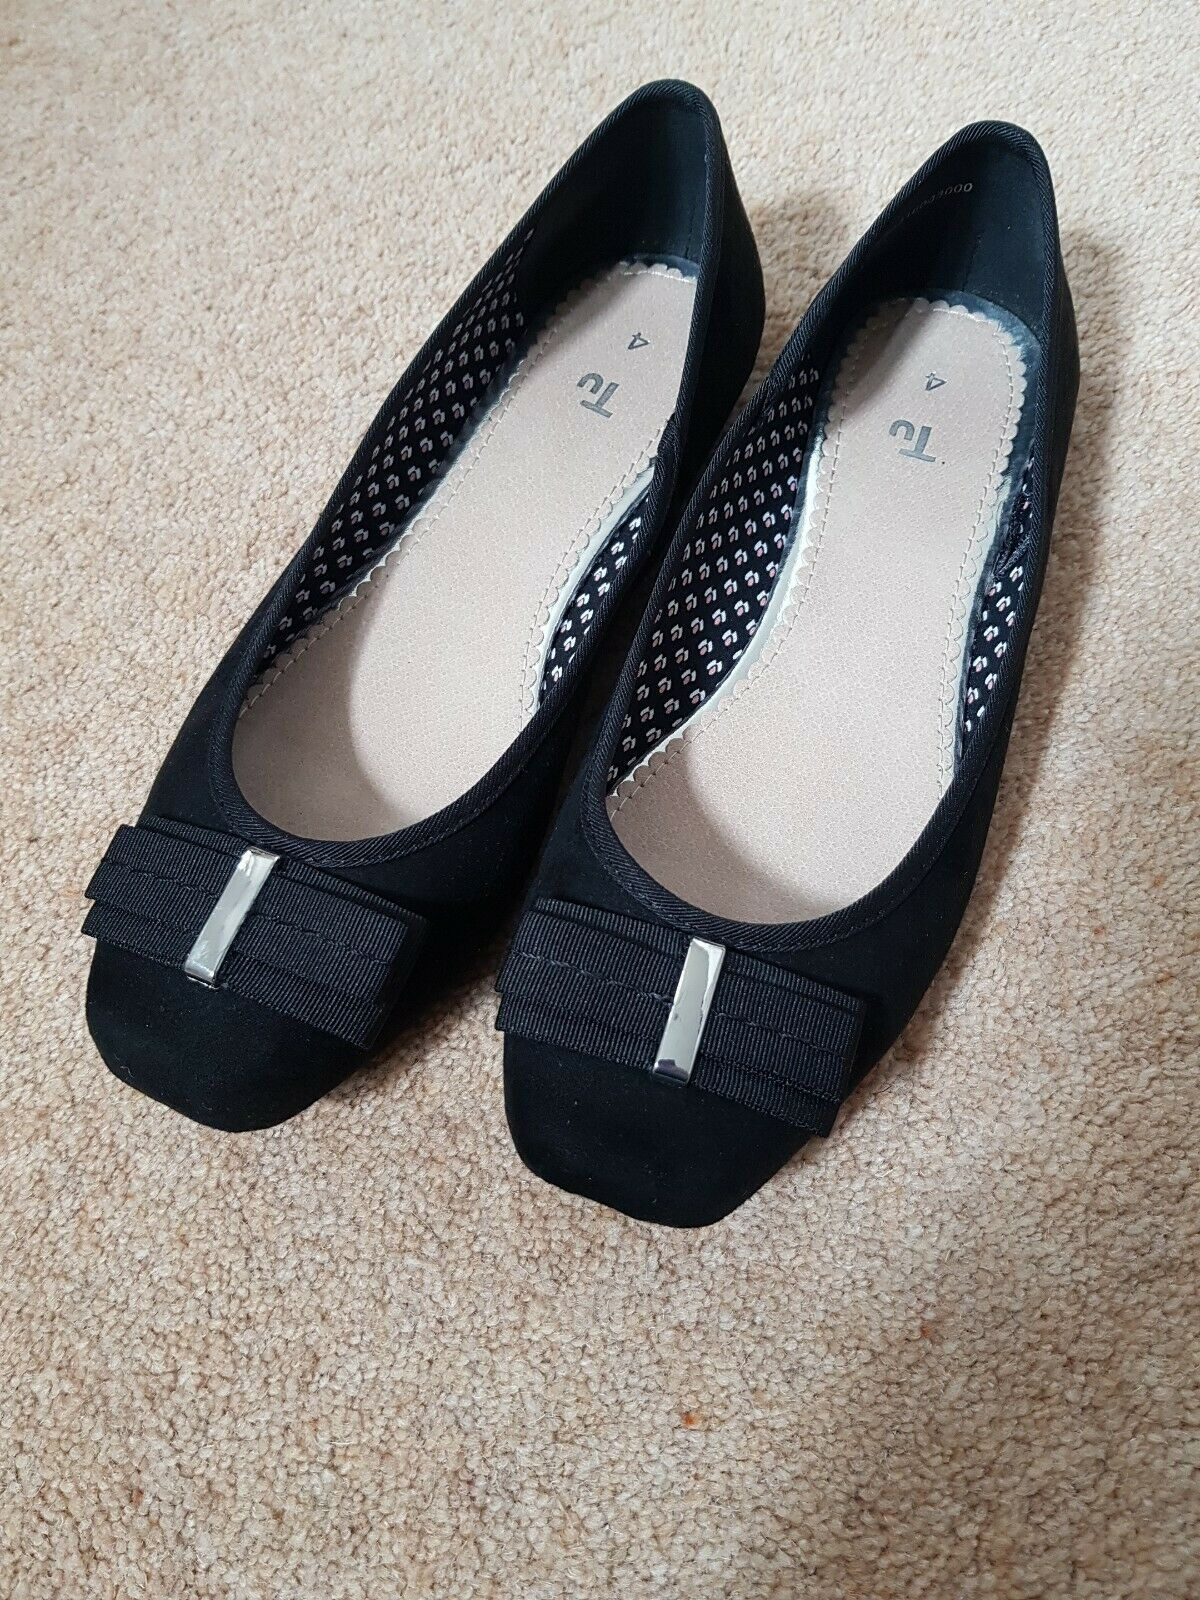 Ladies Black Ballerine Shoes, Size 4 From TU. VGC only Worn A Couple Of Times